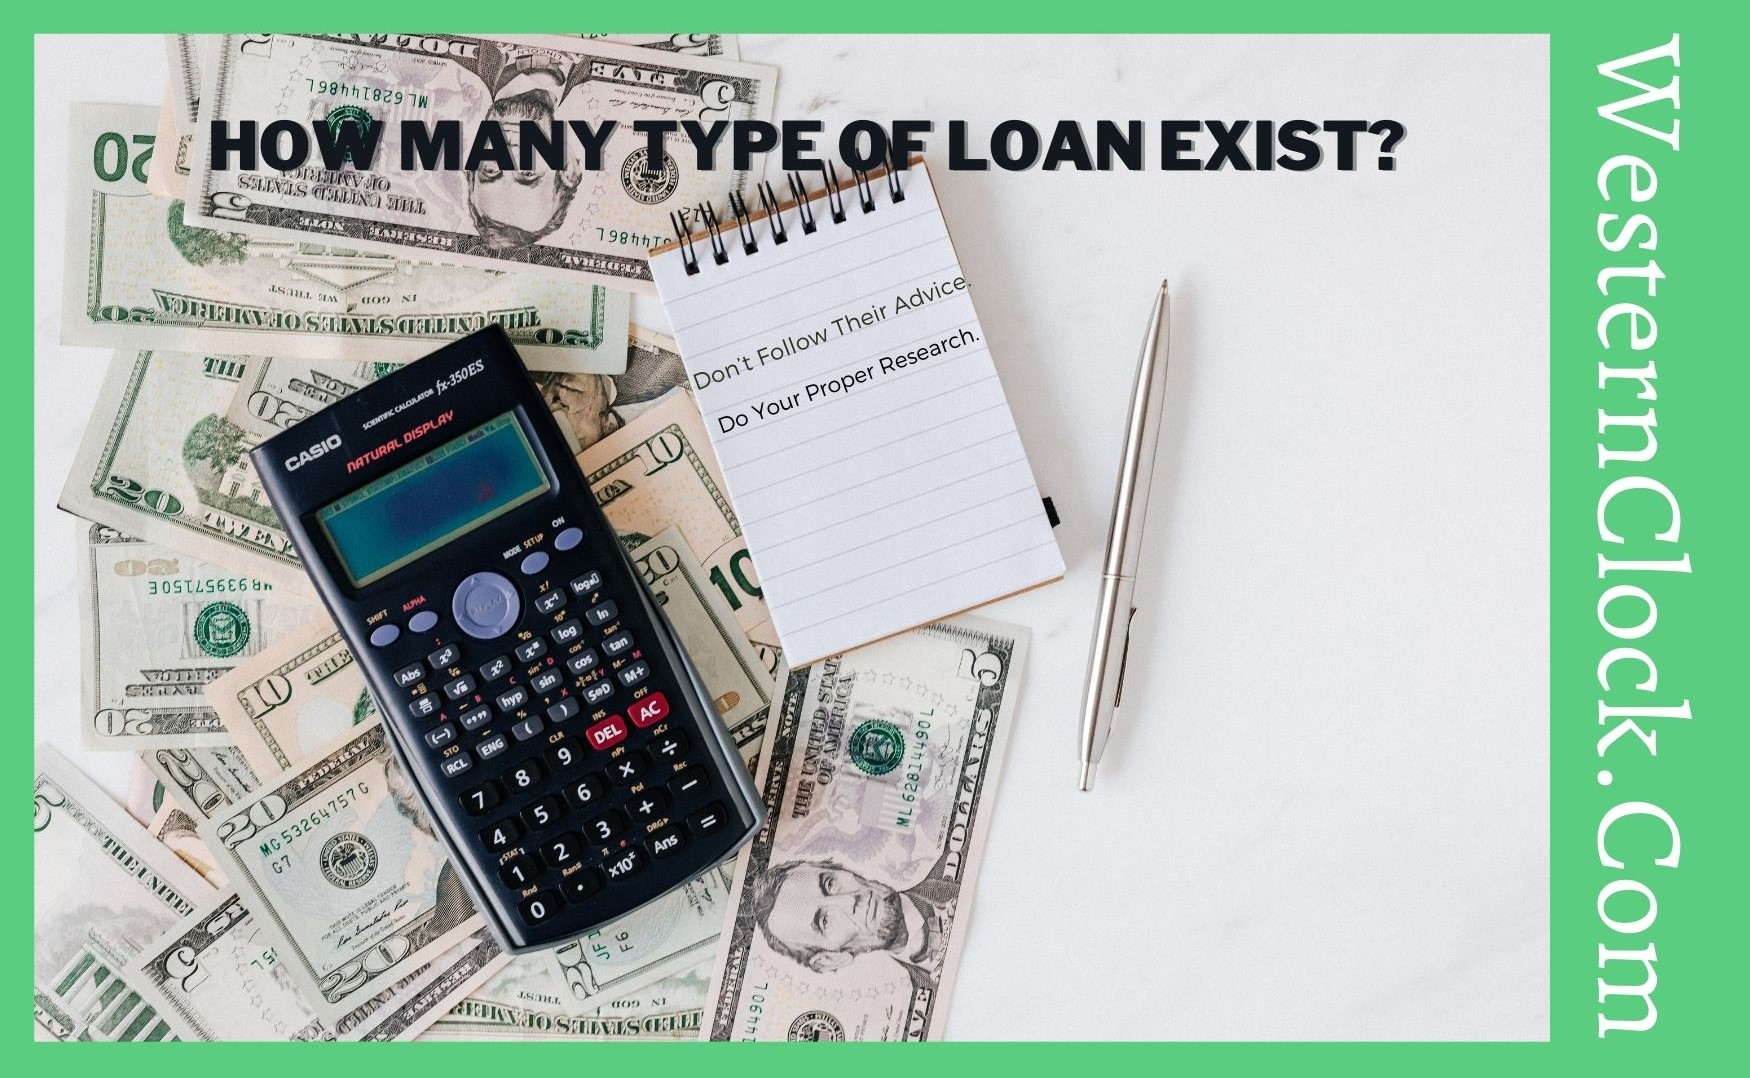 How many type of loan